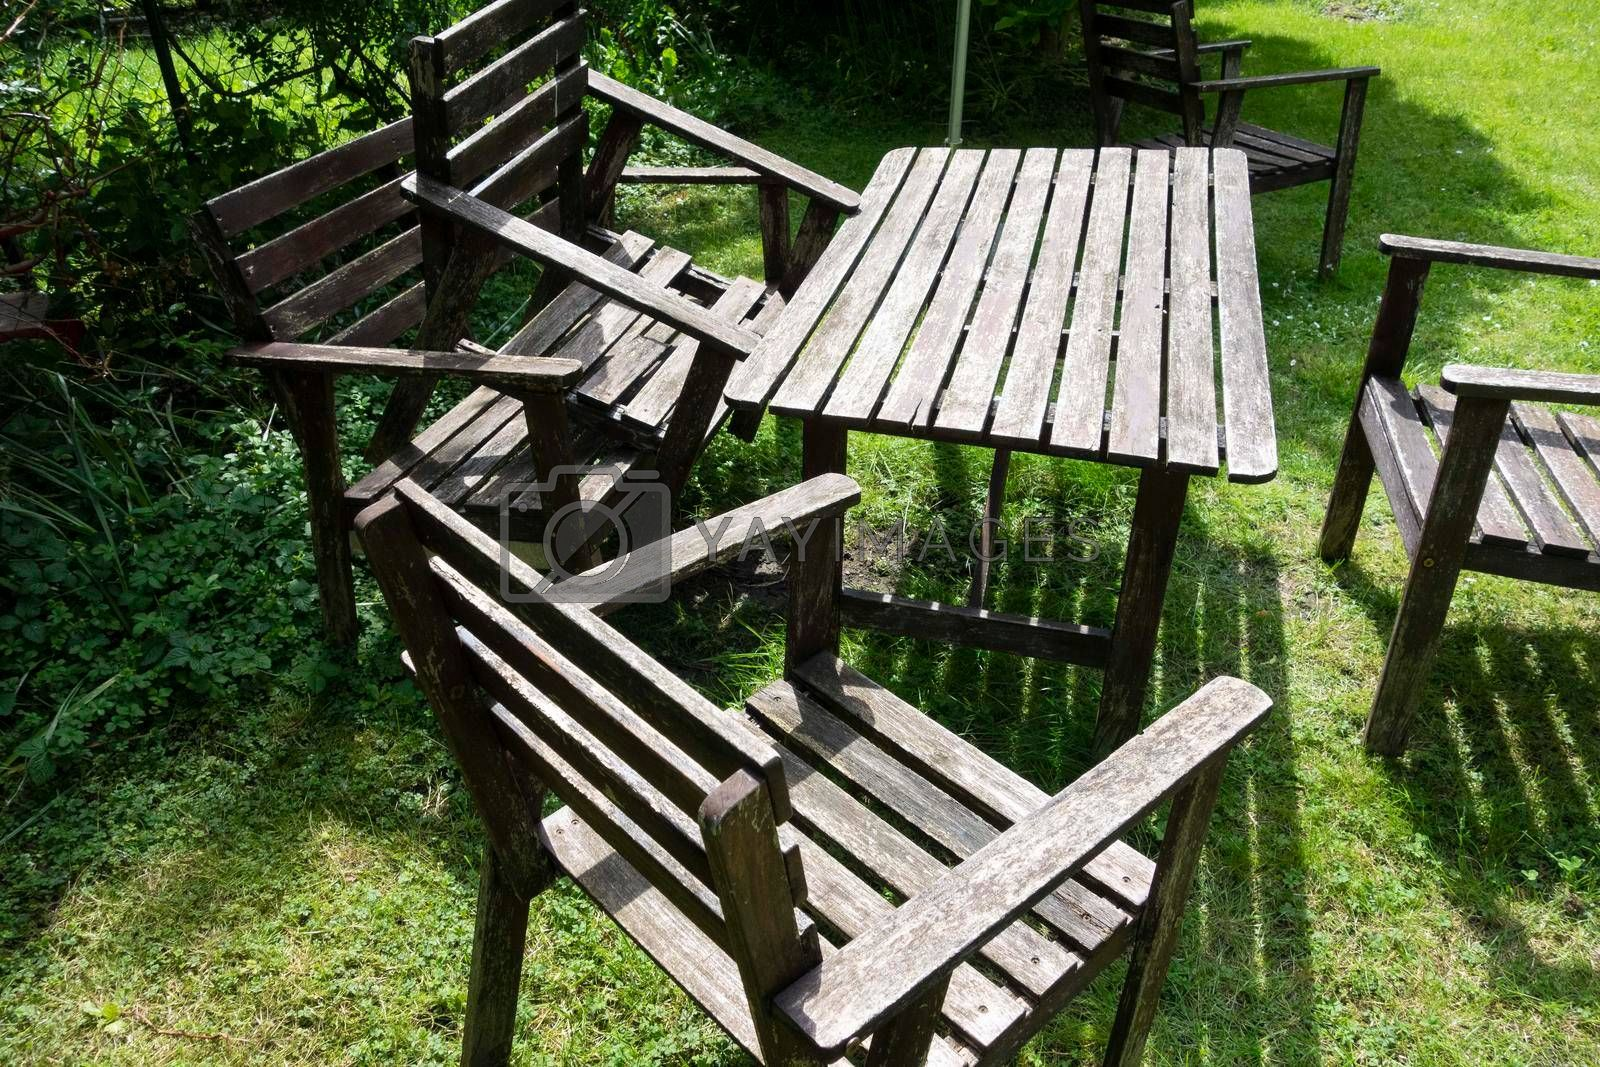 chairs or armchairs for sitting and relaxing in the garden